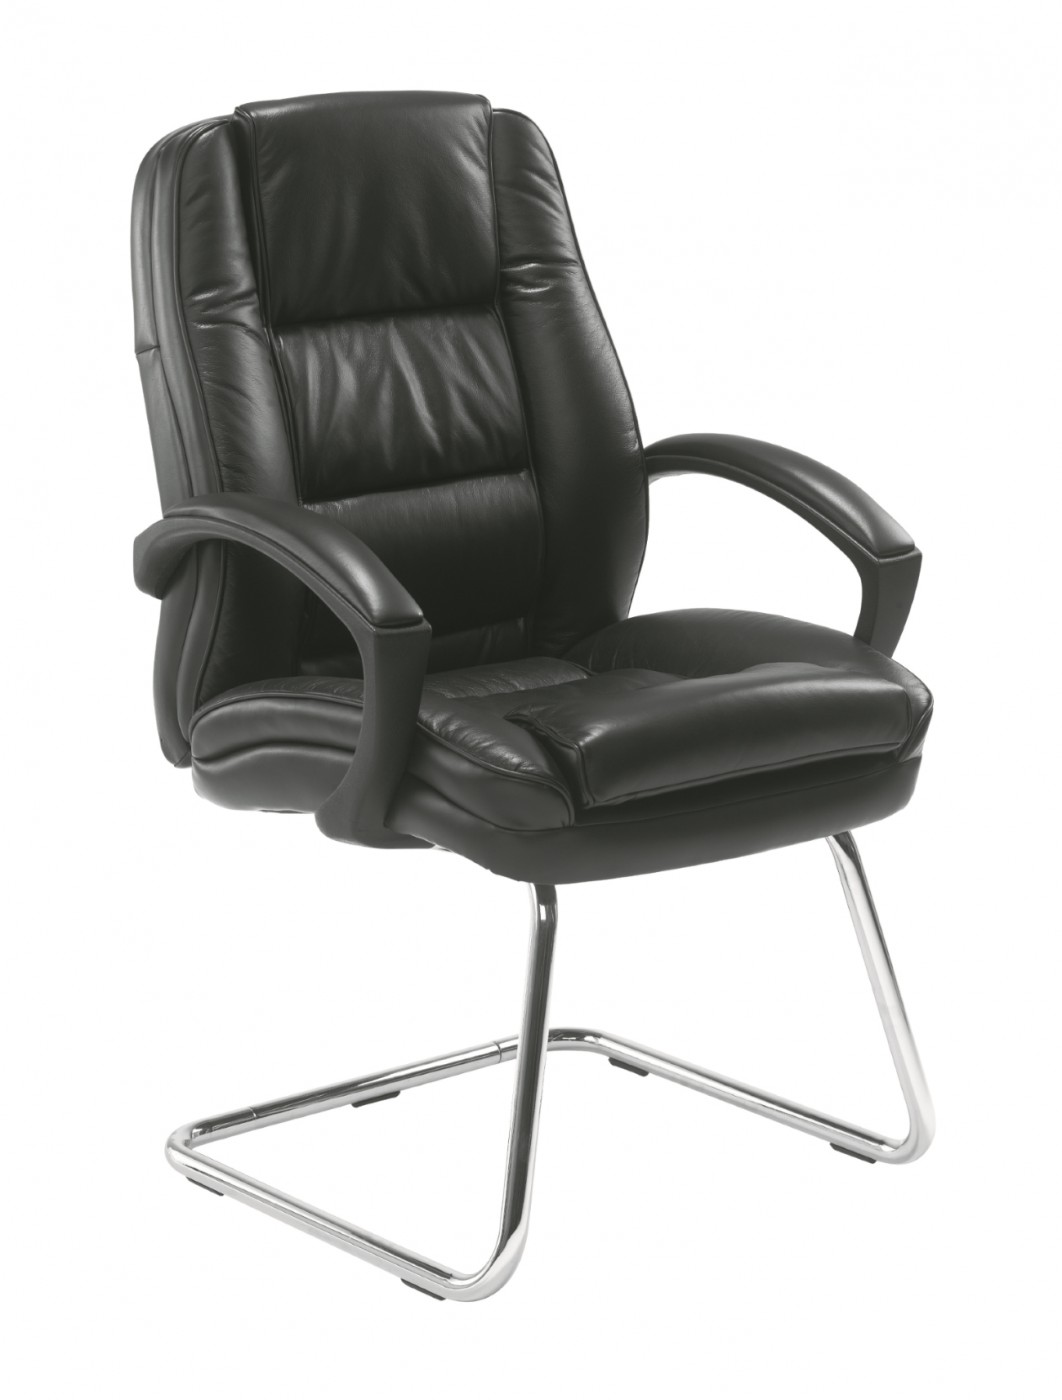 Meeting Chairs - TC Colorado Leather Visitor Chairs CH0245